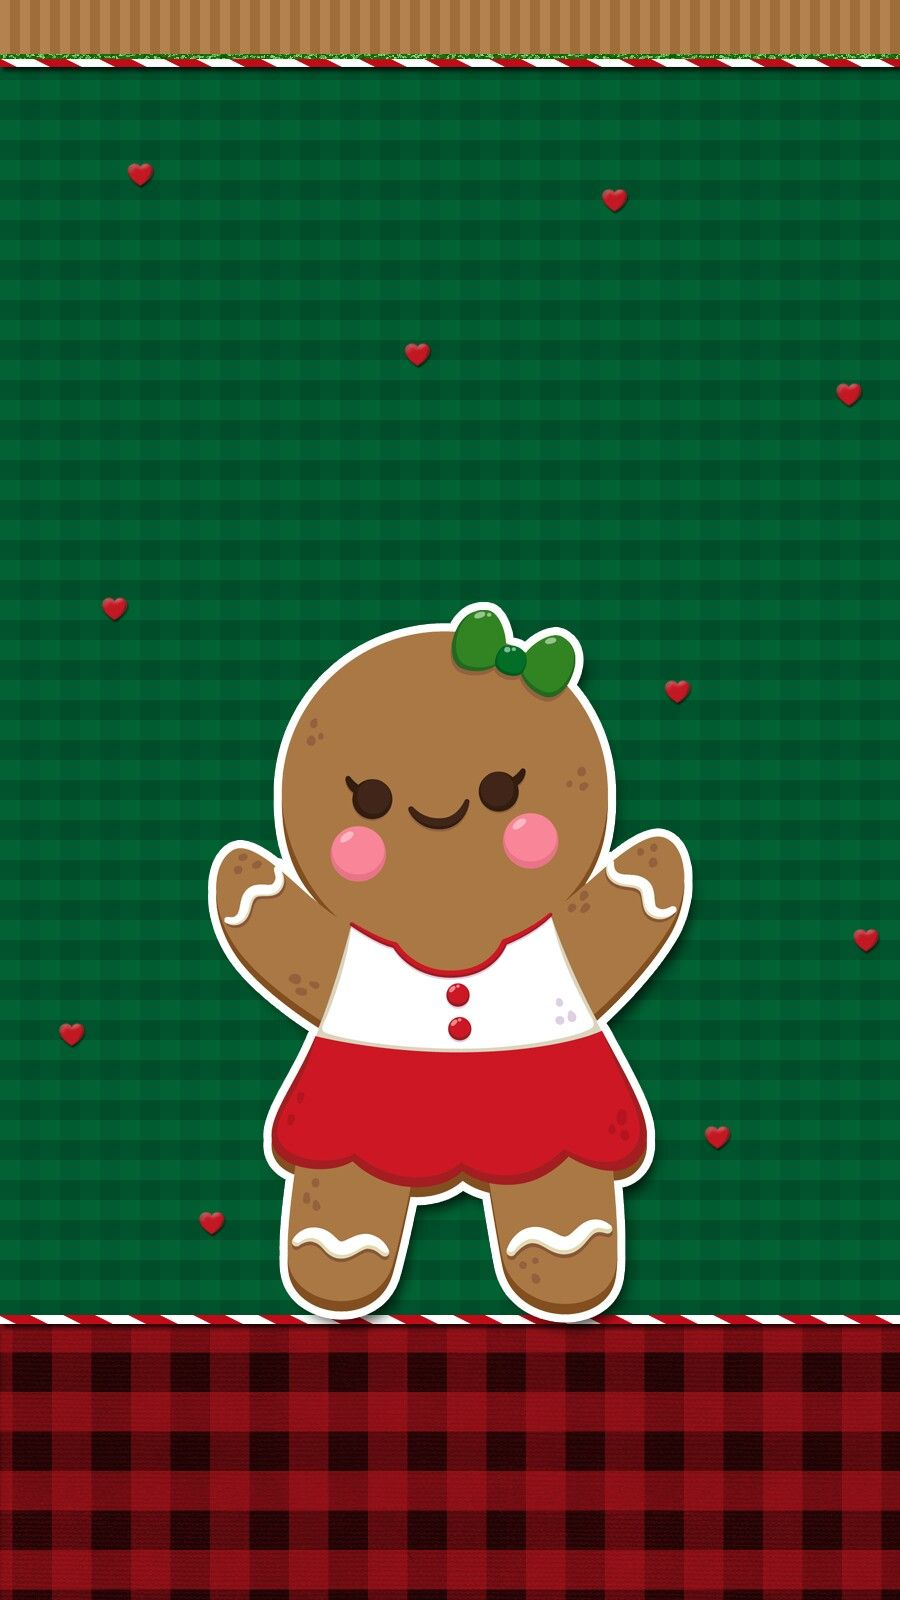 Cute Gingerbread Wallpaper Iphone Android Christmas Cute